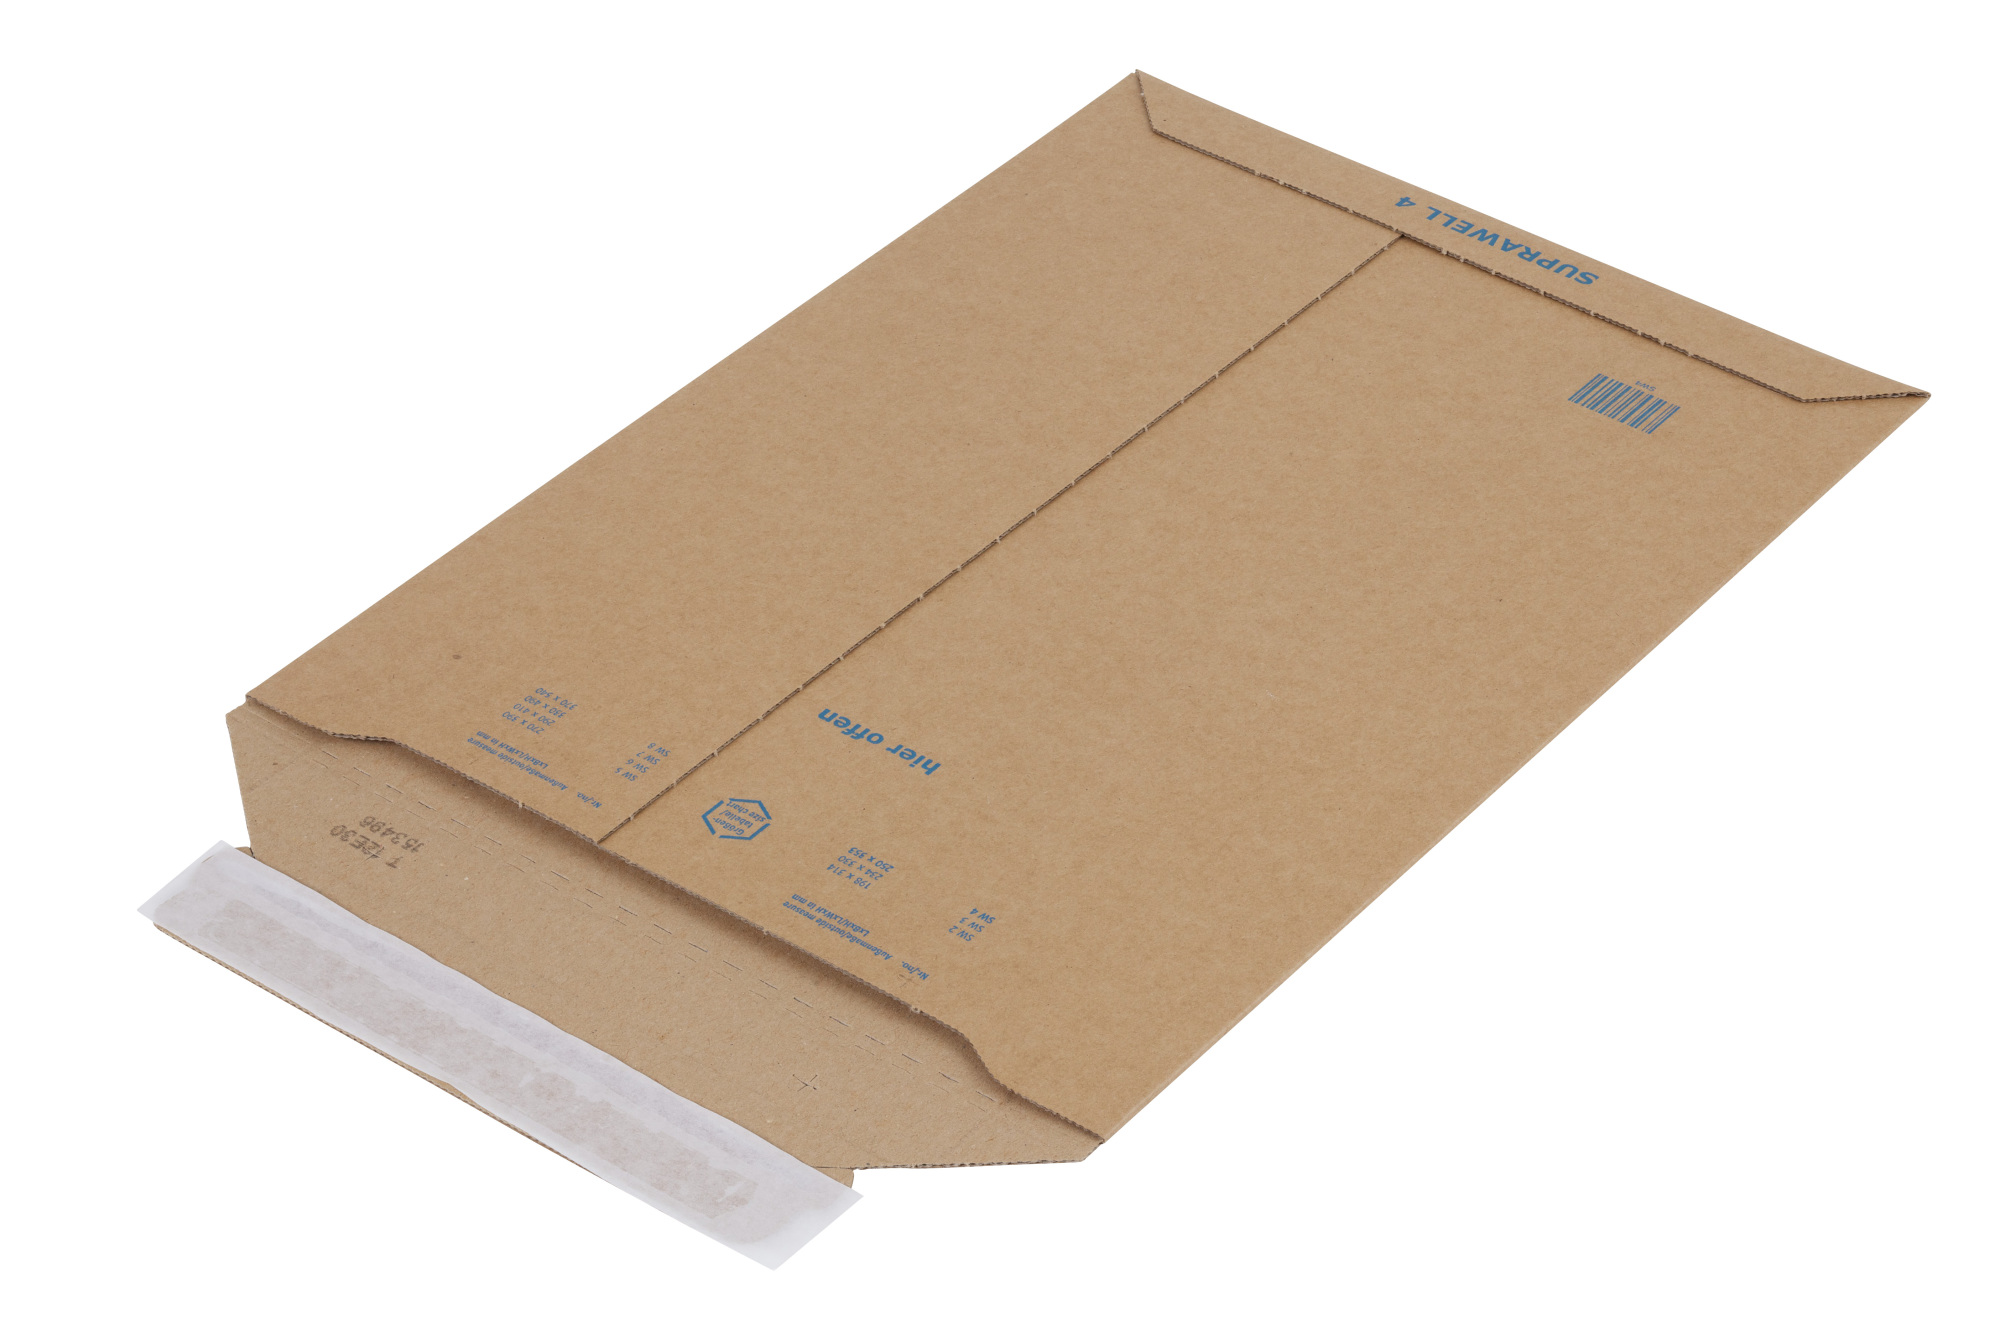 Suprawell Corrugated Envelopes 234 x 330mm (100/Box)